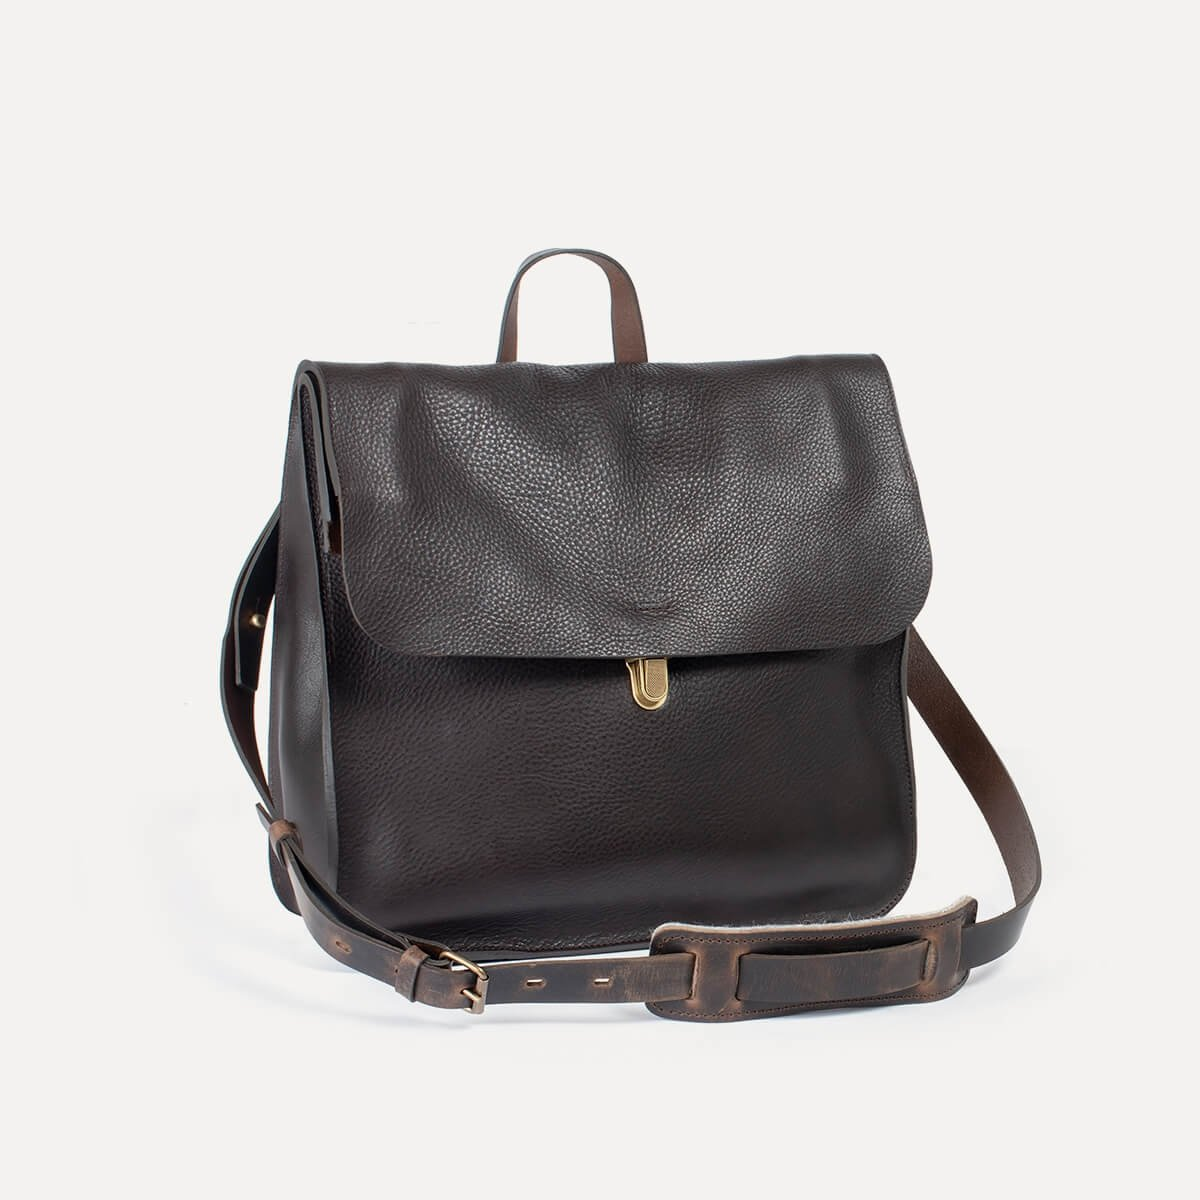 Chico Leather Satchel - Dark Brown / E Pure (image n°3)